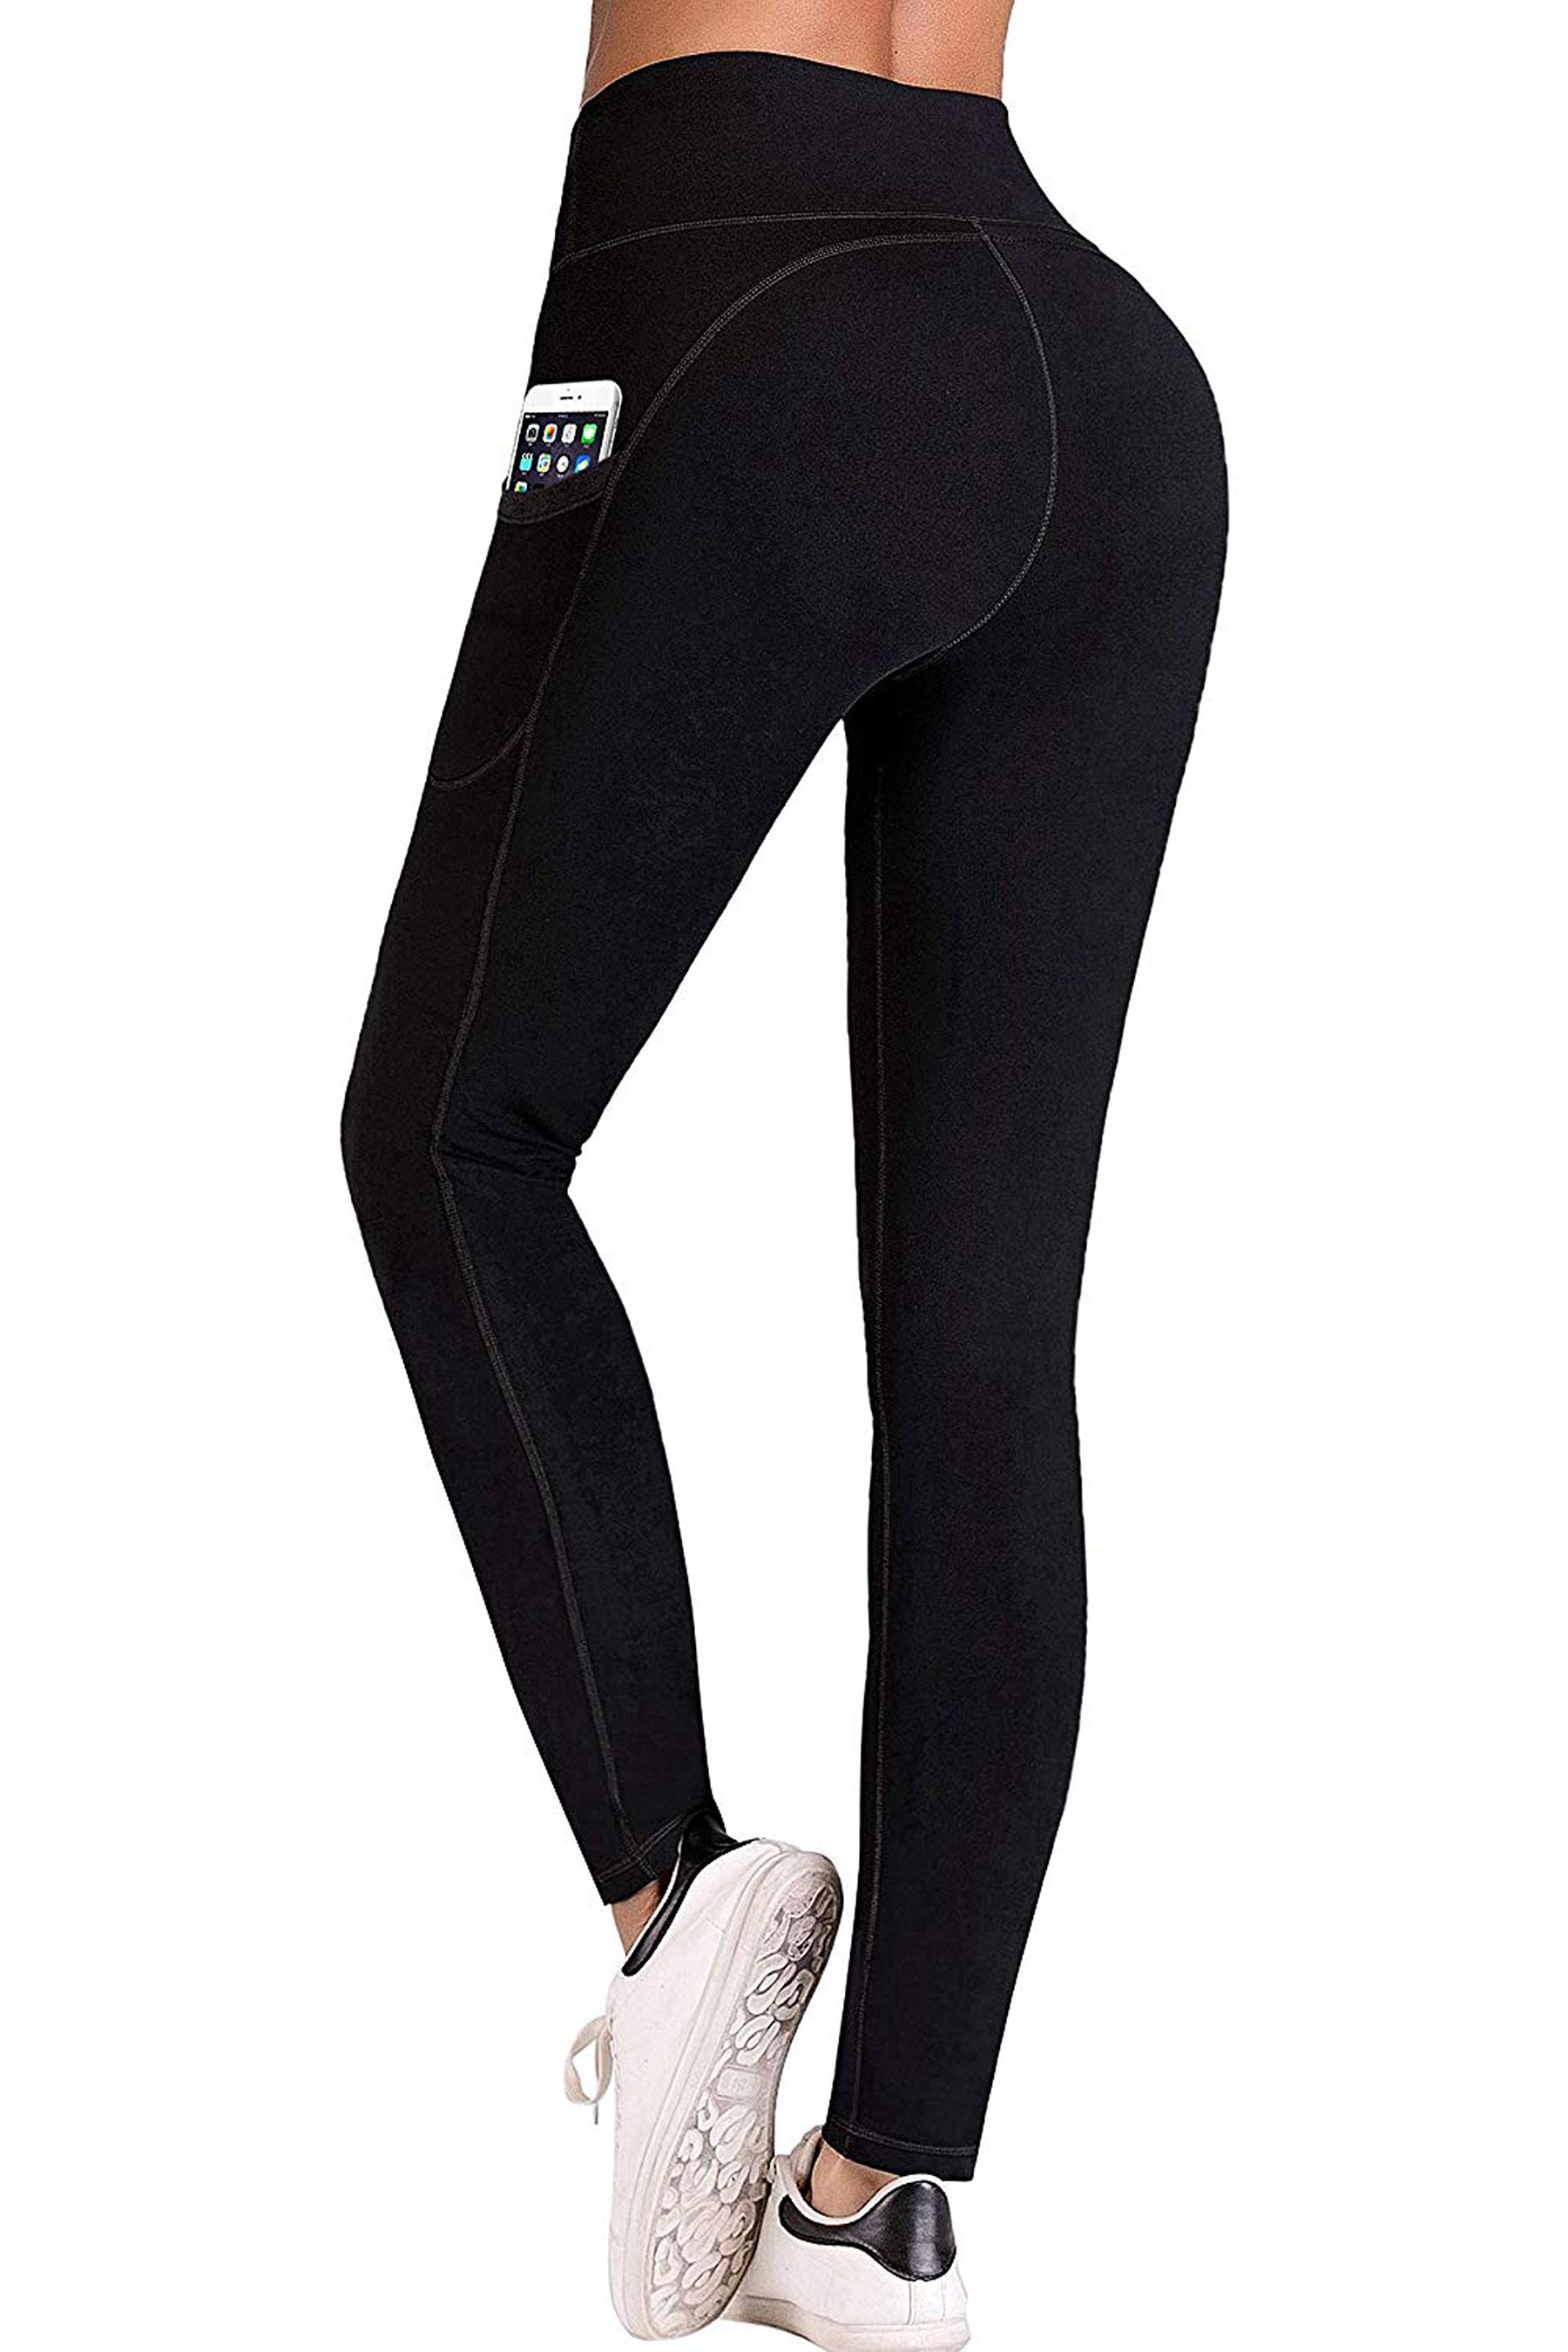 19++ Yoga pants with pockets for work trends